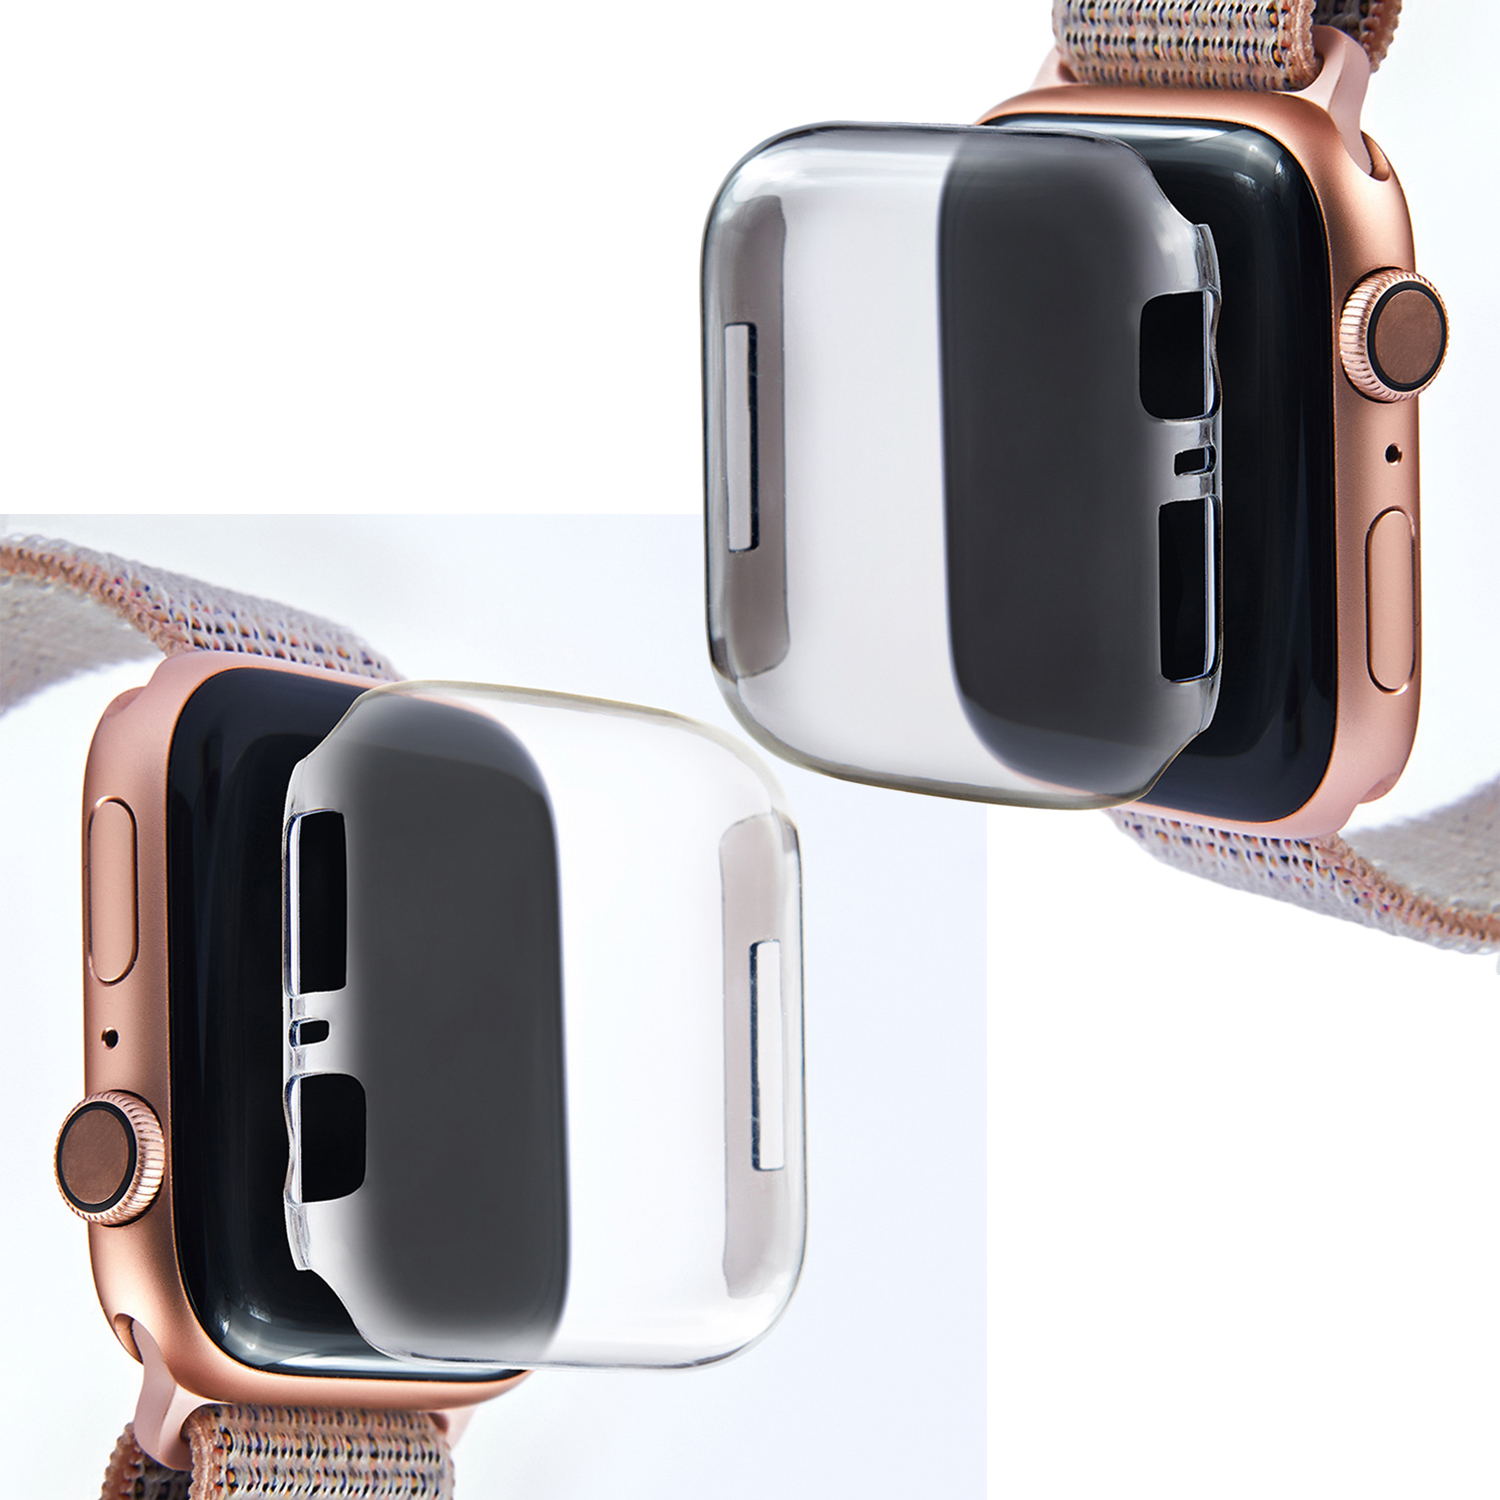 Besegad Fashion Transparent Anti-fall Shockproof Soft TPU Protective Case Cover for Apple Watch iWatch 4 40mm 44mm Accessories